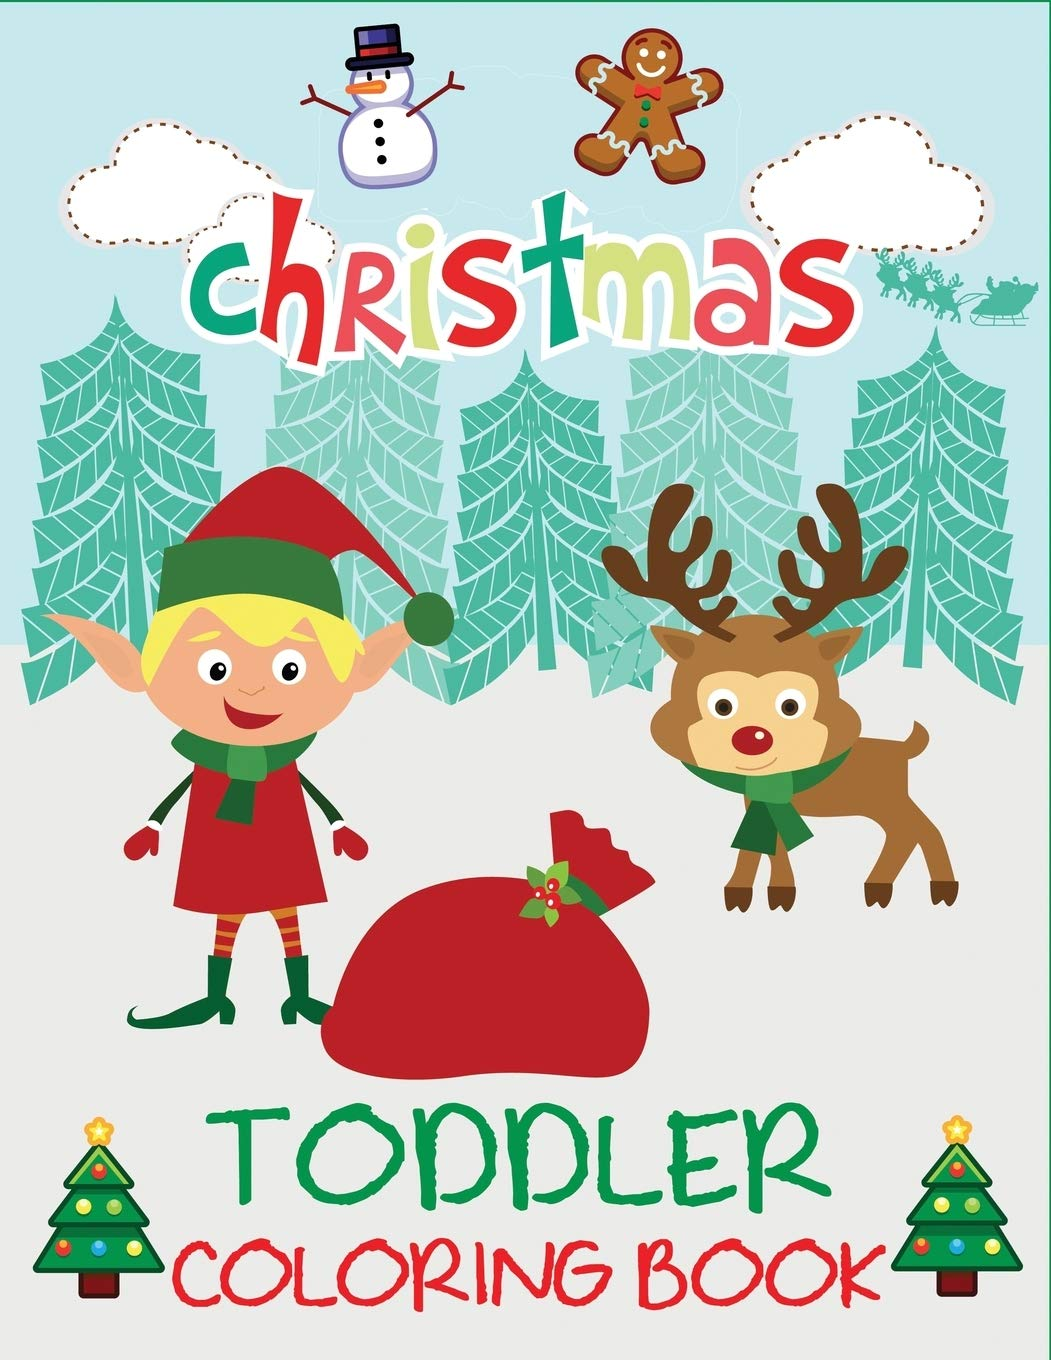 - Christmas Toddler Coloring Book: Christmas Coloring Book For